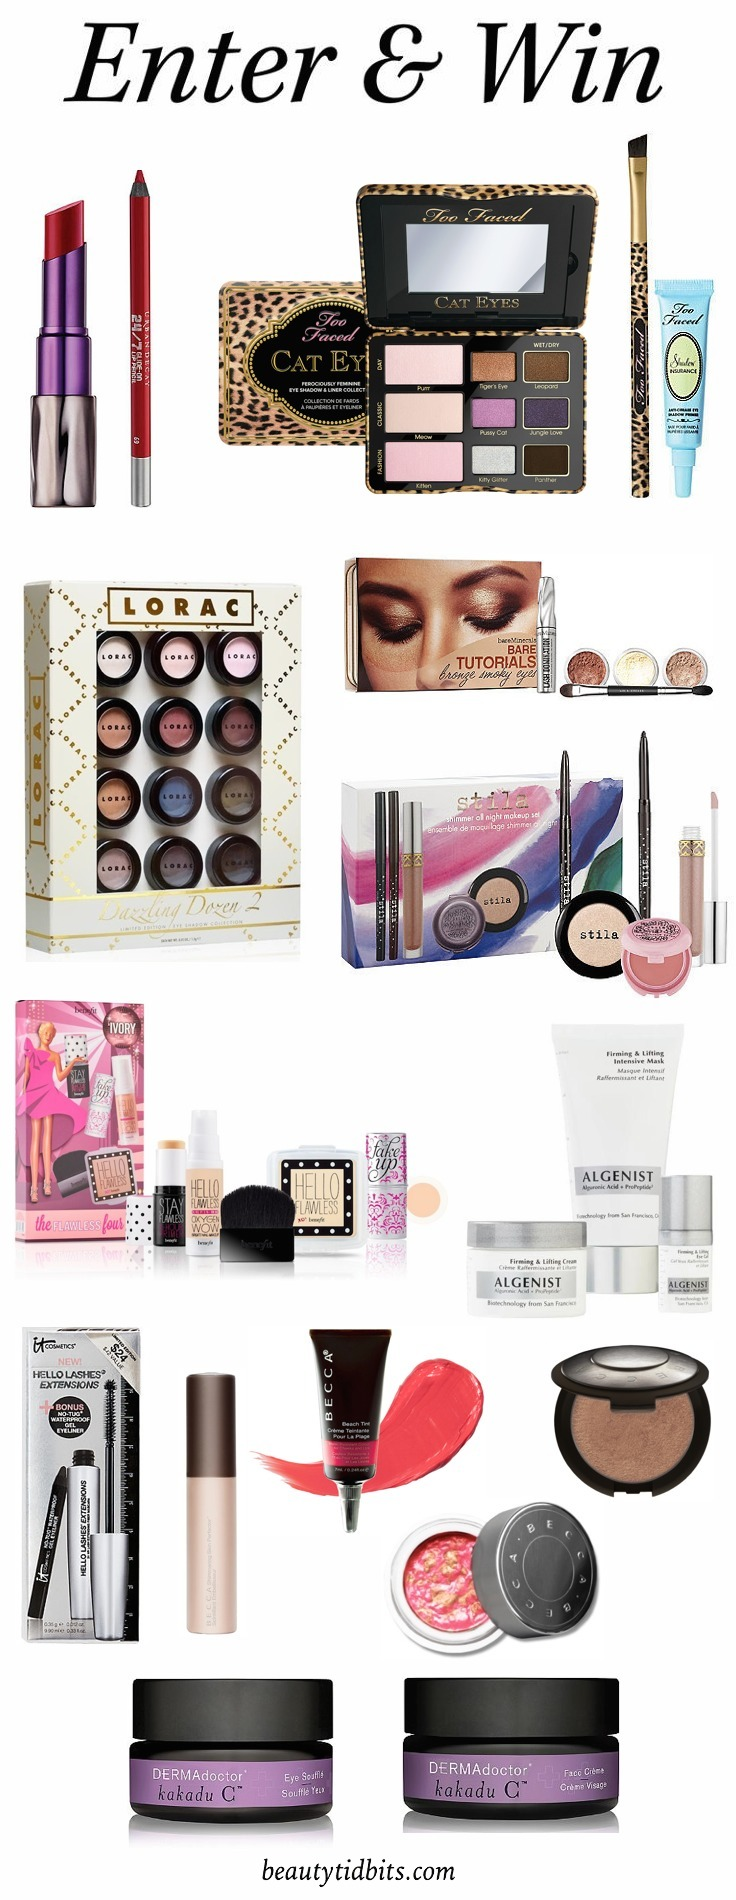 Ulta Beauty Prize pack Giveaway